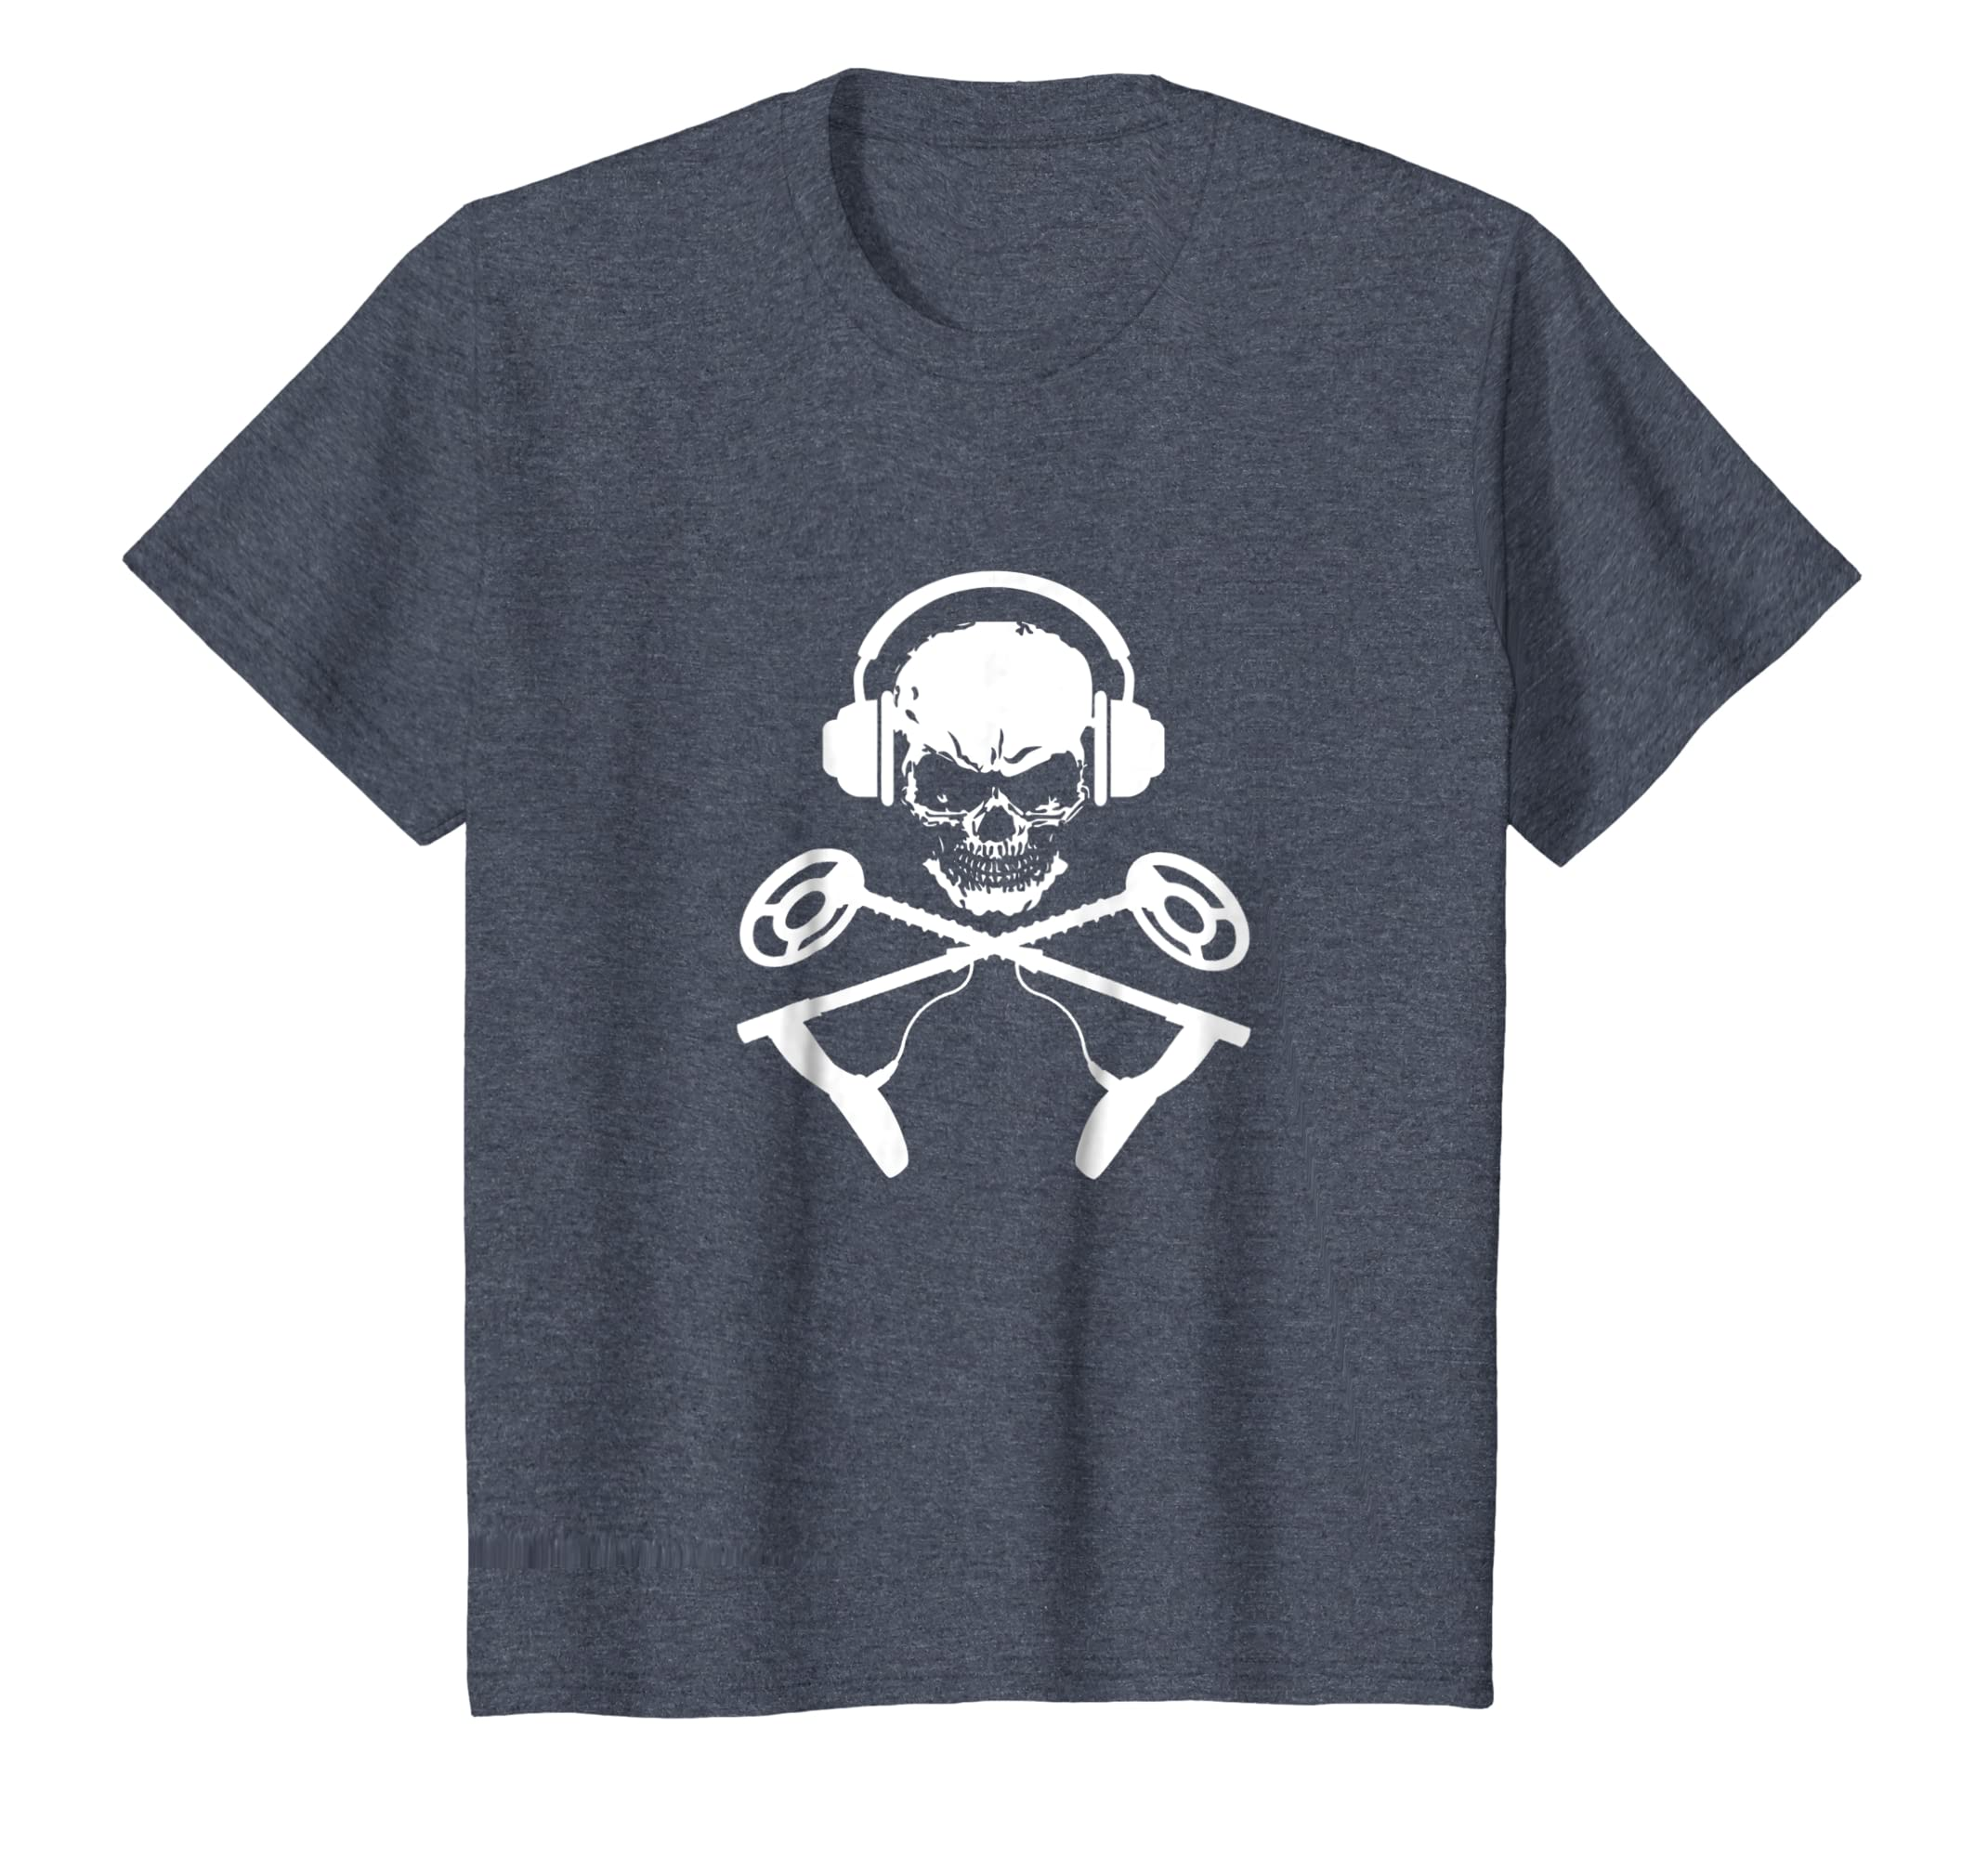 Amazon.com: Skull And Metal Detector Cross Bones Metal Detecting T-Shirt: Clothing